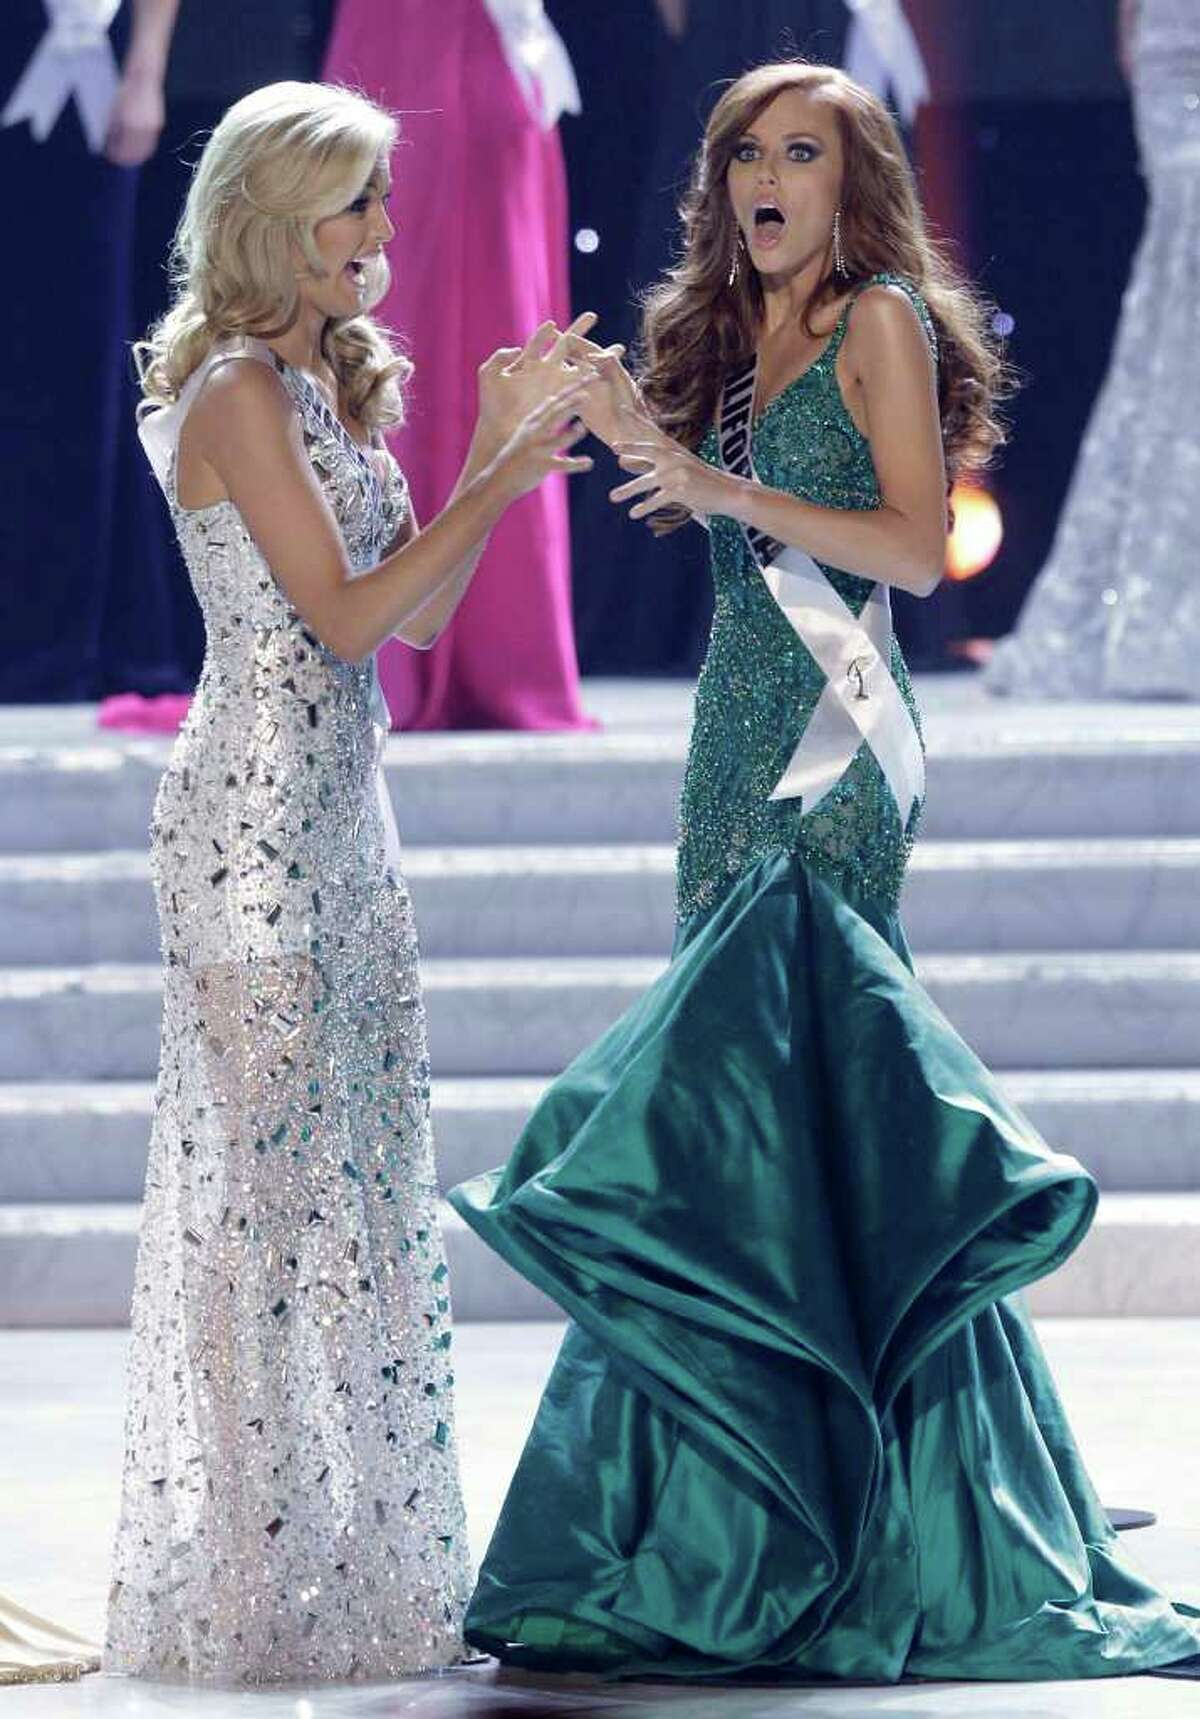 Alyssa Campanella, Miss California, reacts as she is announced as the 2011 Miss USA as Miss Tennessee, Ashley Elizabeth Durham looks on, Sunday, June 19, 2011, in Las Vegas.